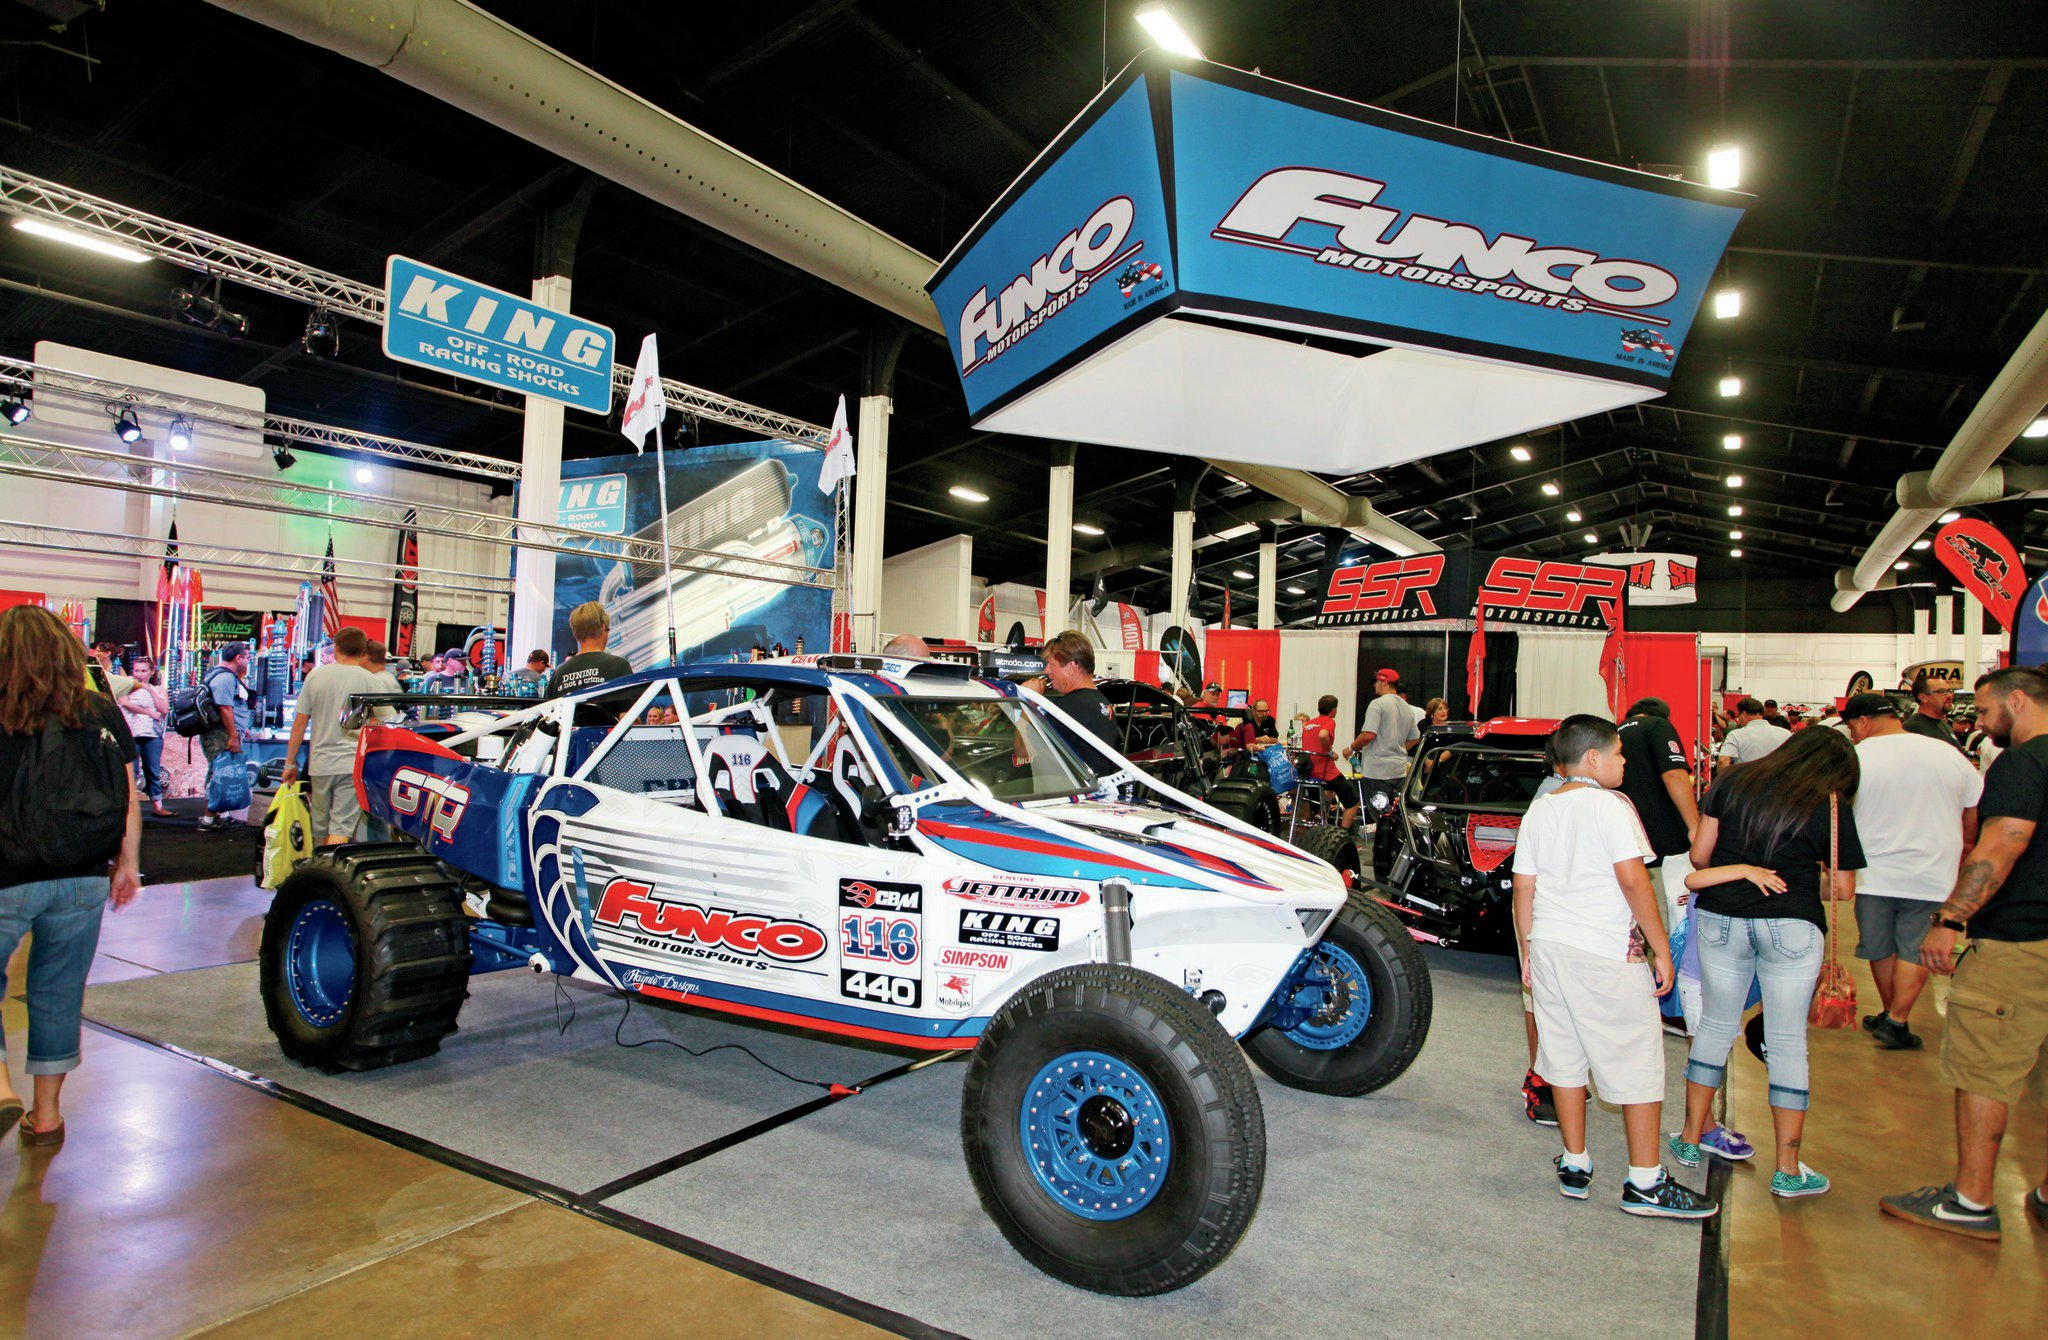 A historic name in off-roading is Funco, and they too were at SSSS to show off their latest creations.